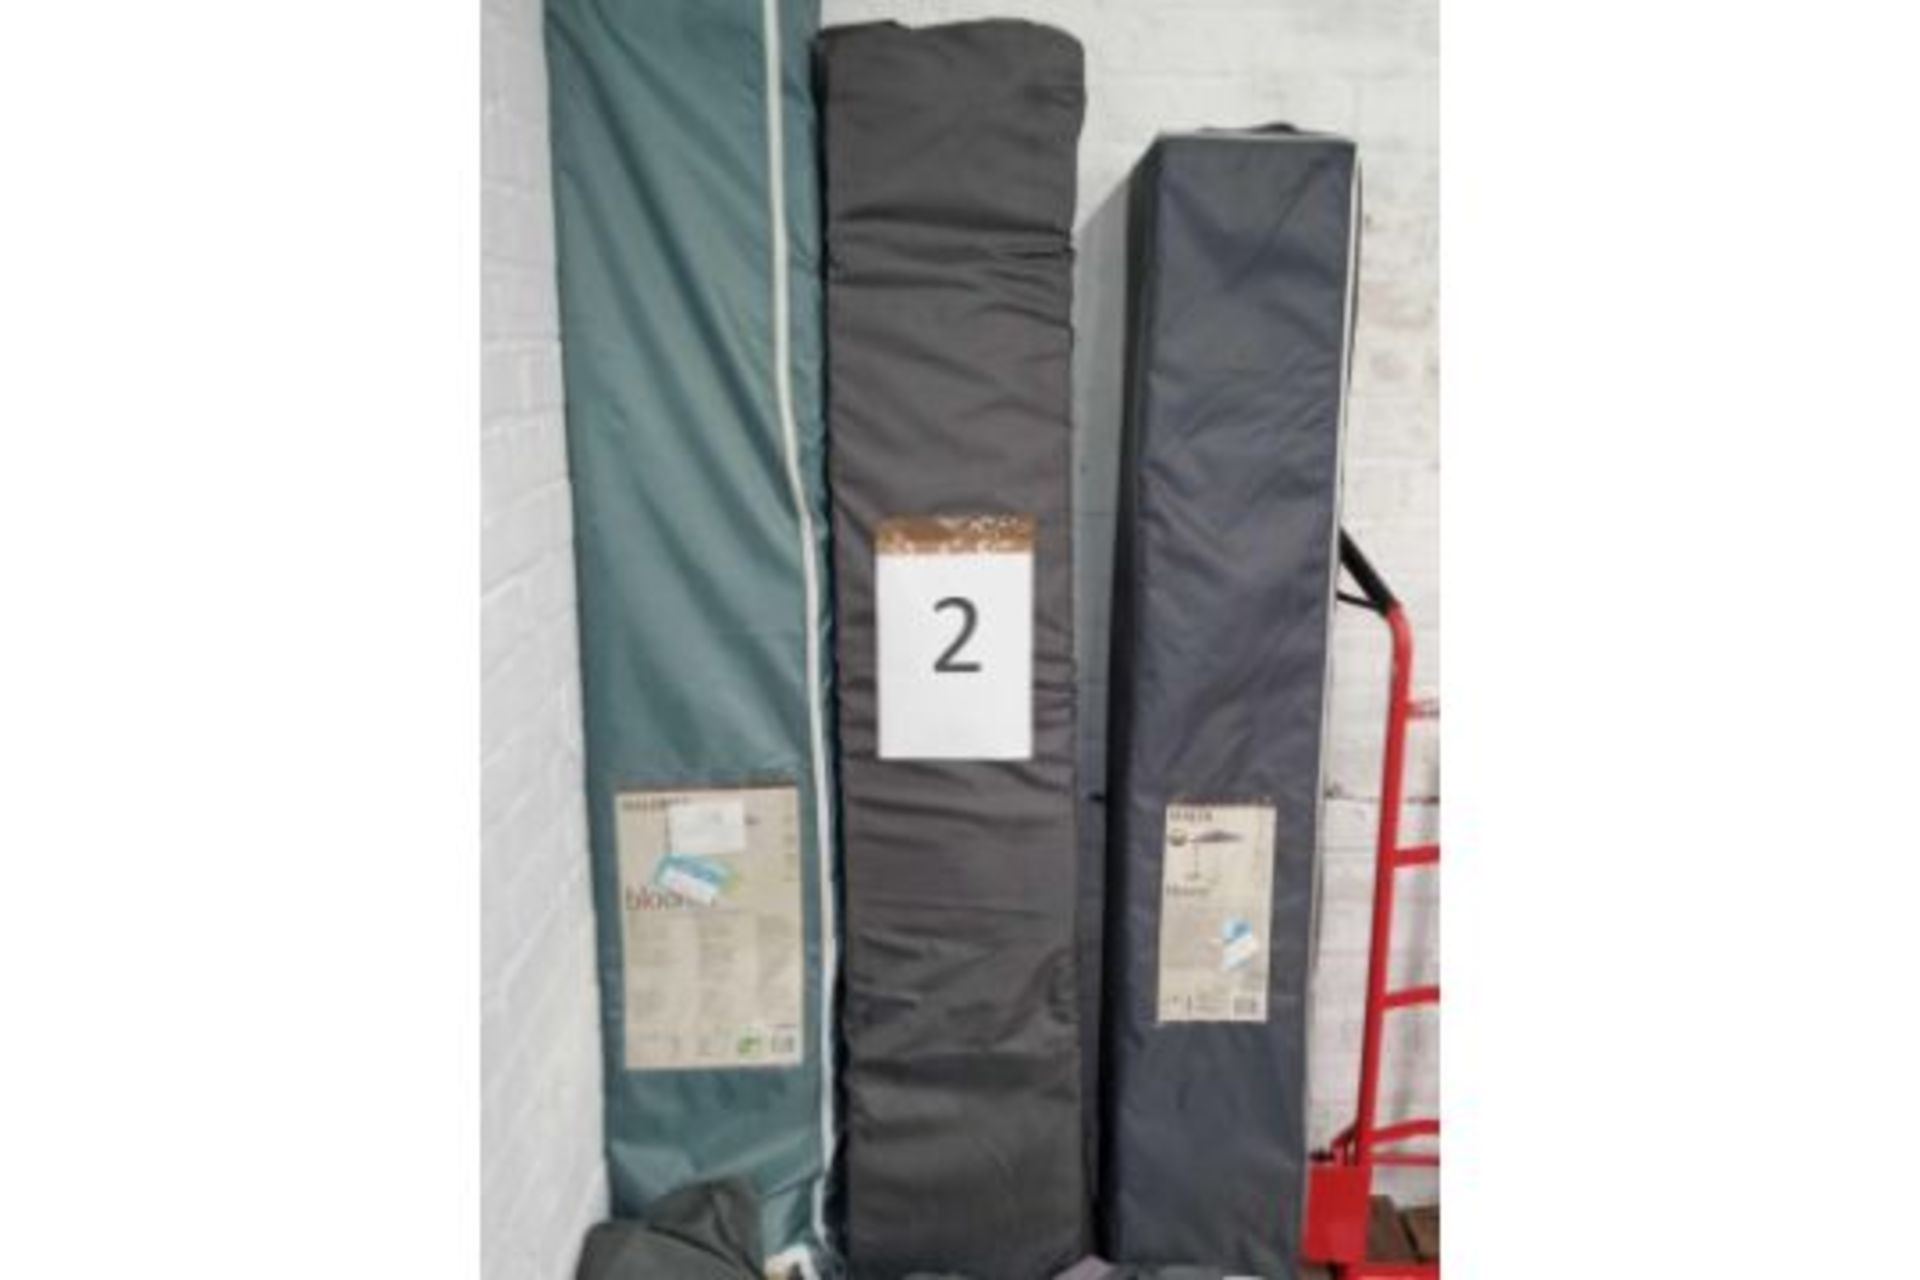 RRP £400 Pallet To Contain 8 Assorted Items For Home Utilisation Or Market Sellers - Image 2 of 3